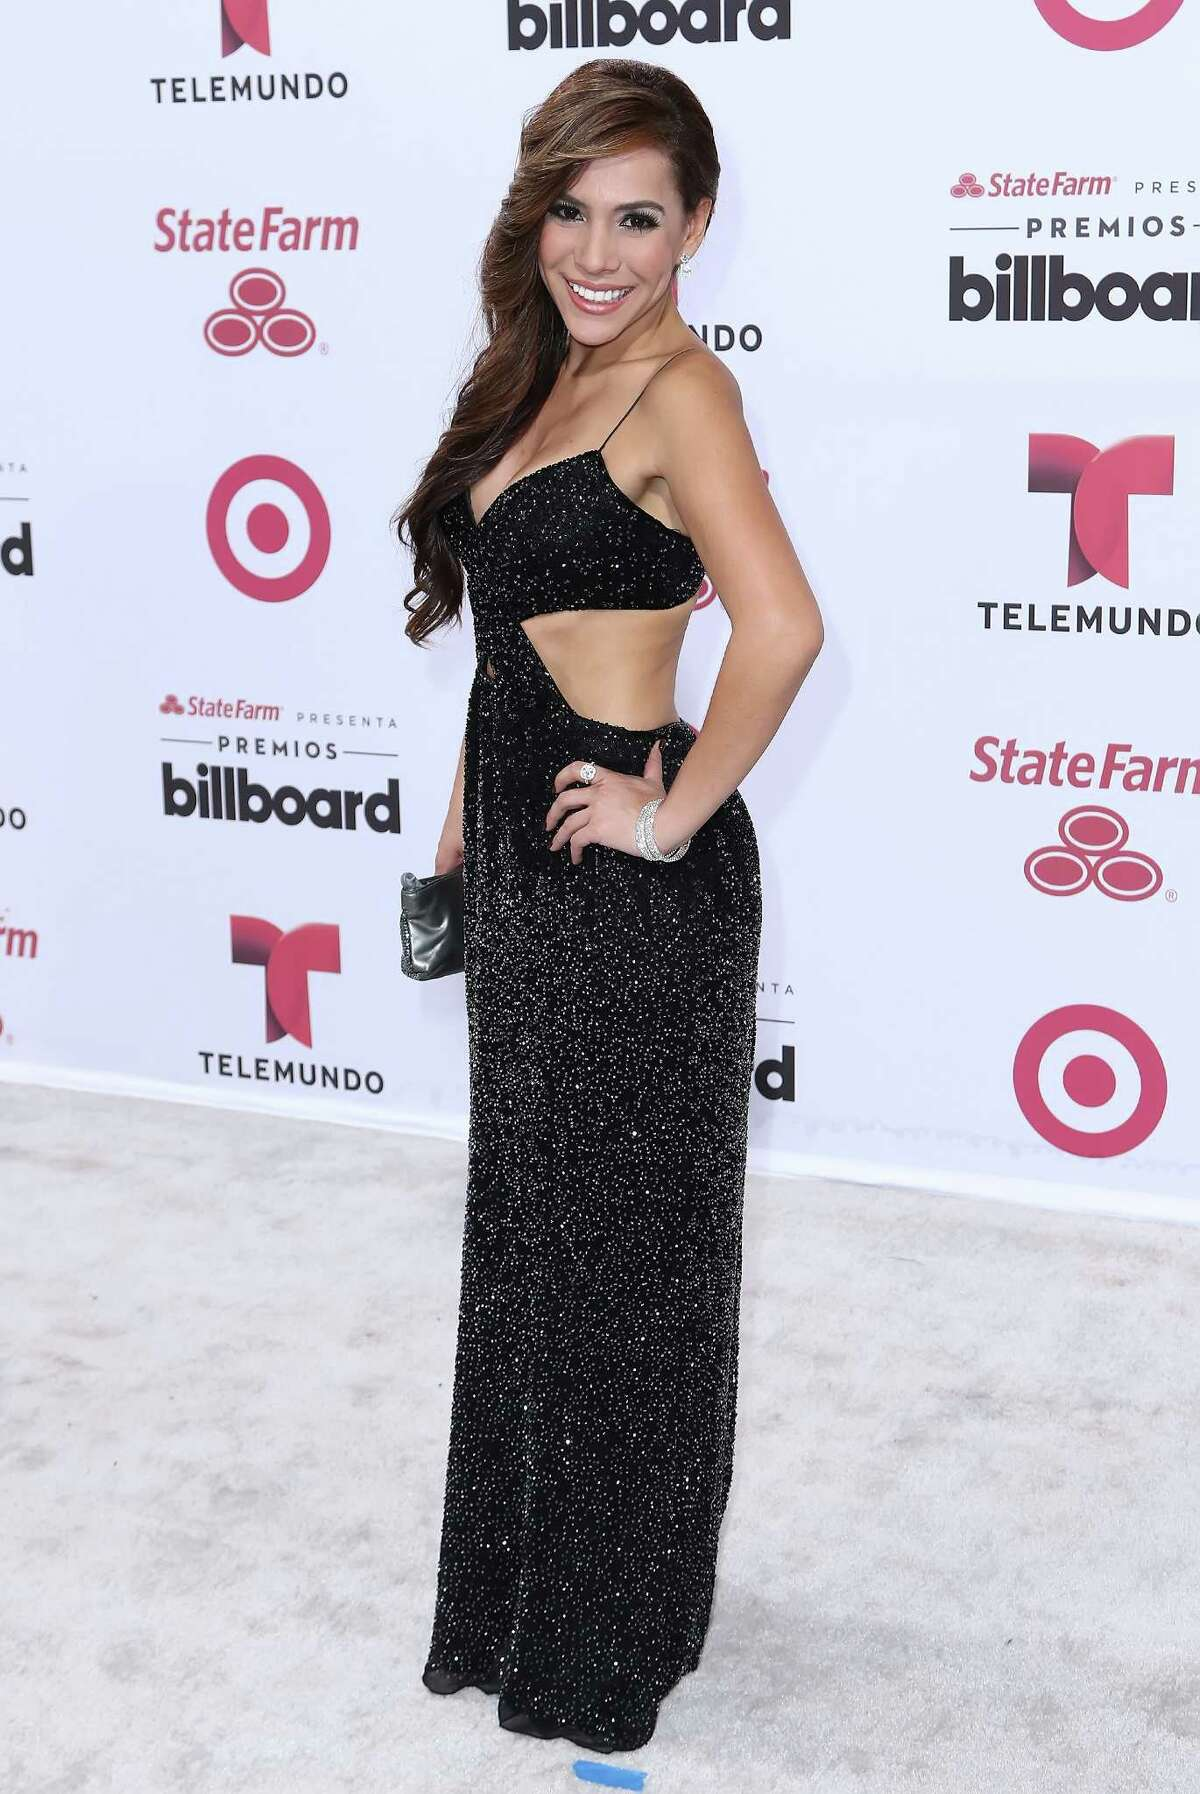 Vela arrives at 2015 Billboard Latin Music Awards presented by State Farm on Telemundo at Bank United Center on April 30, 2015 in Miami, Florida.